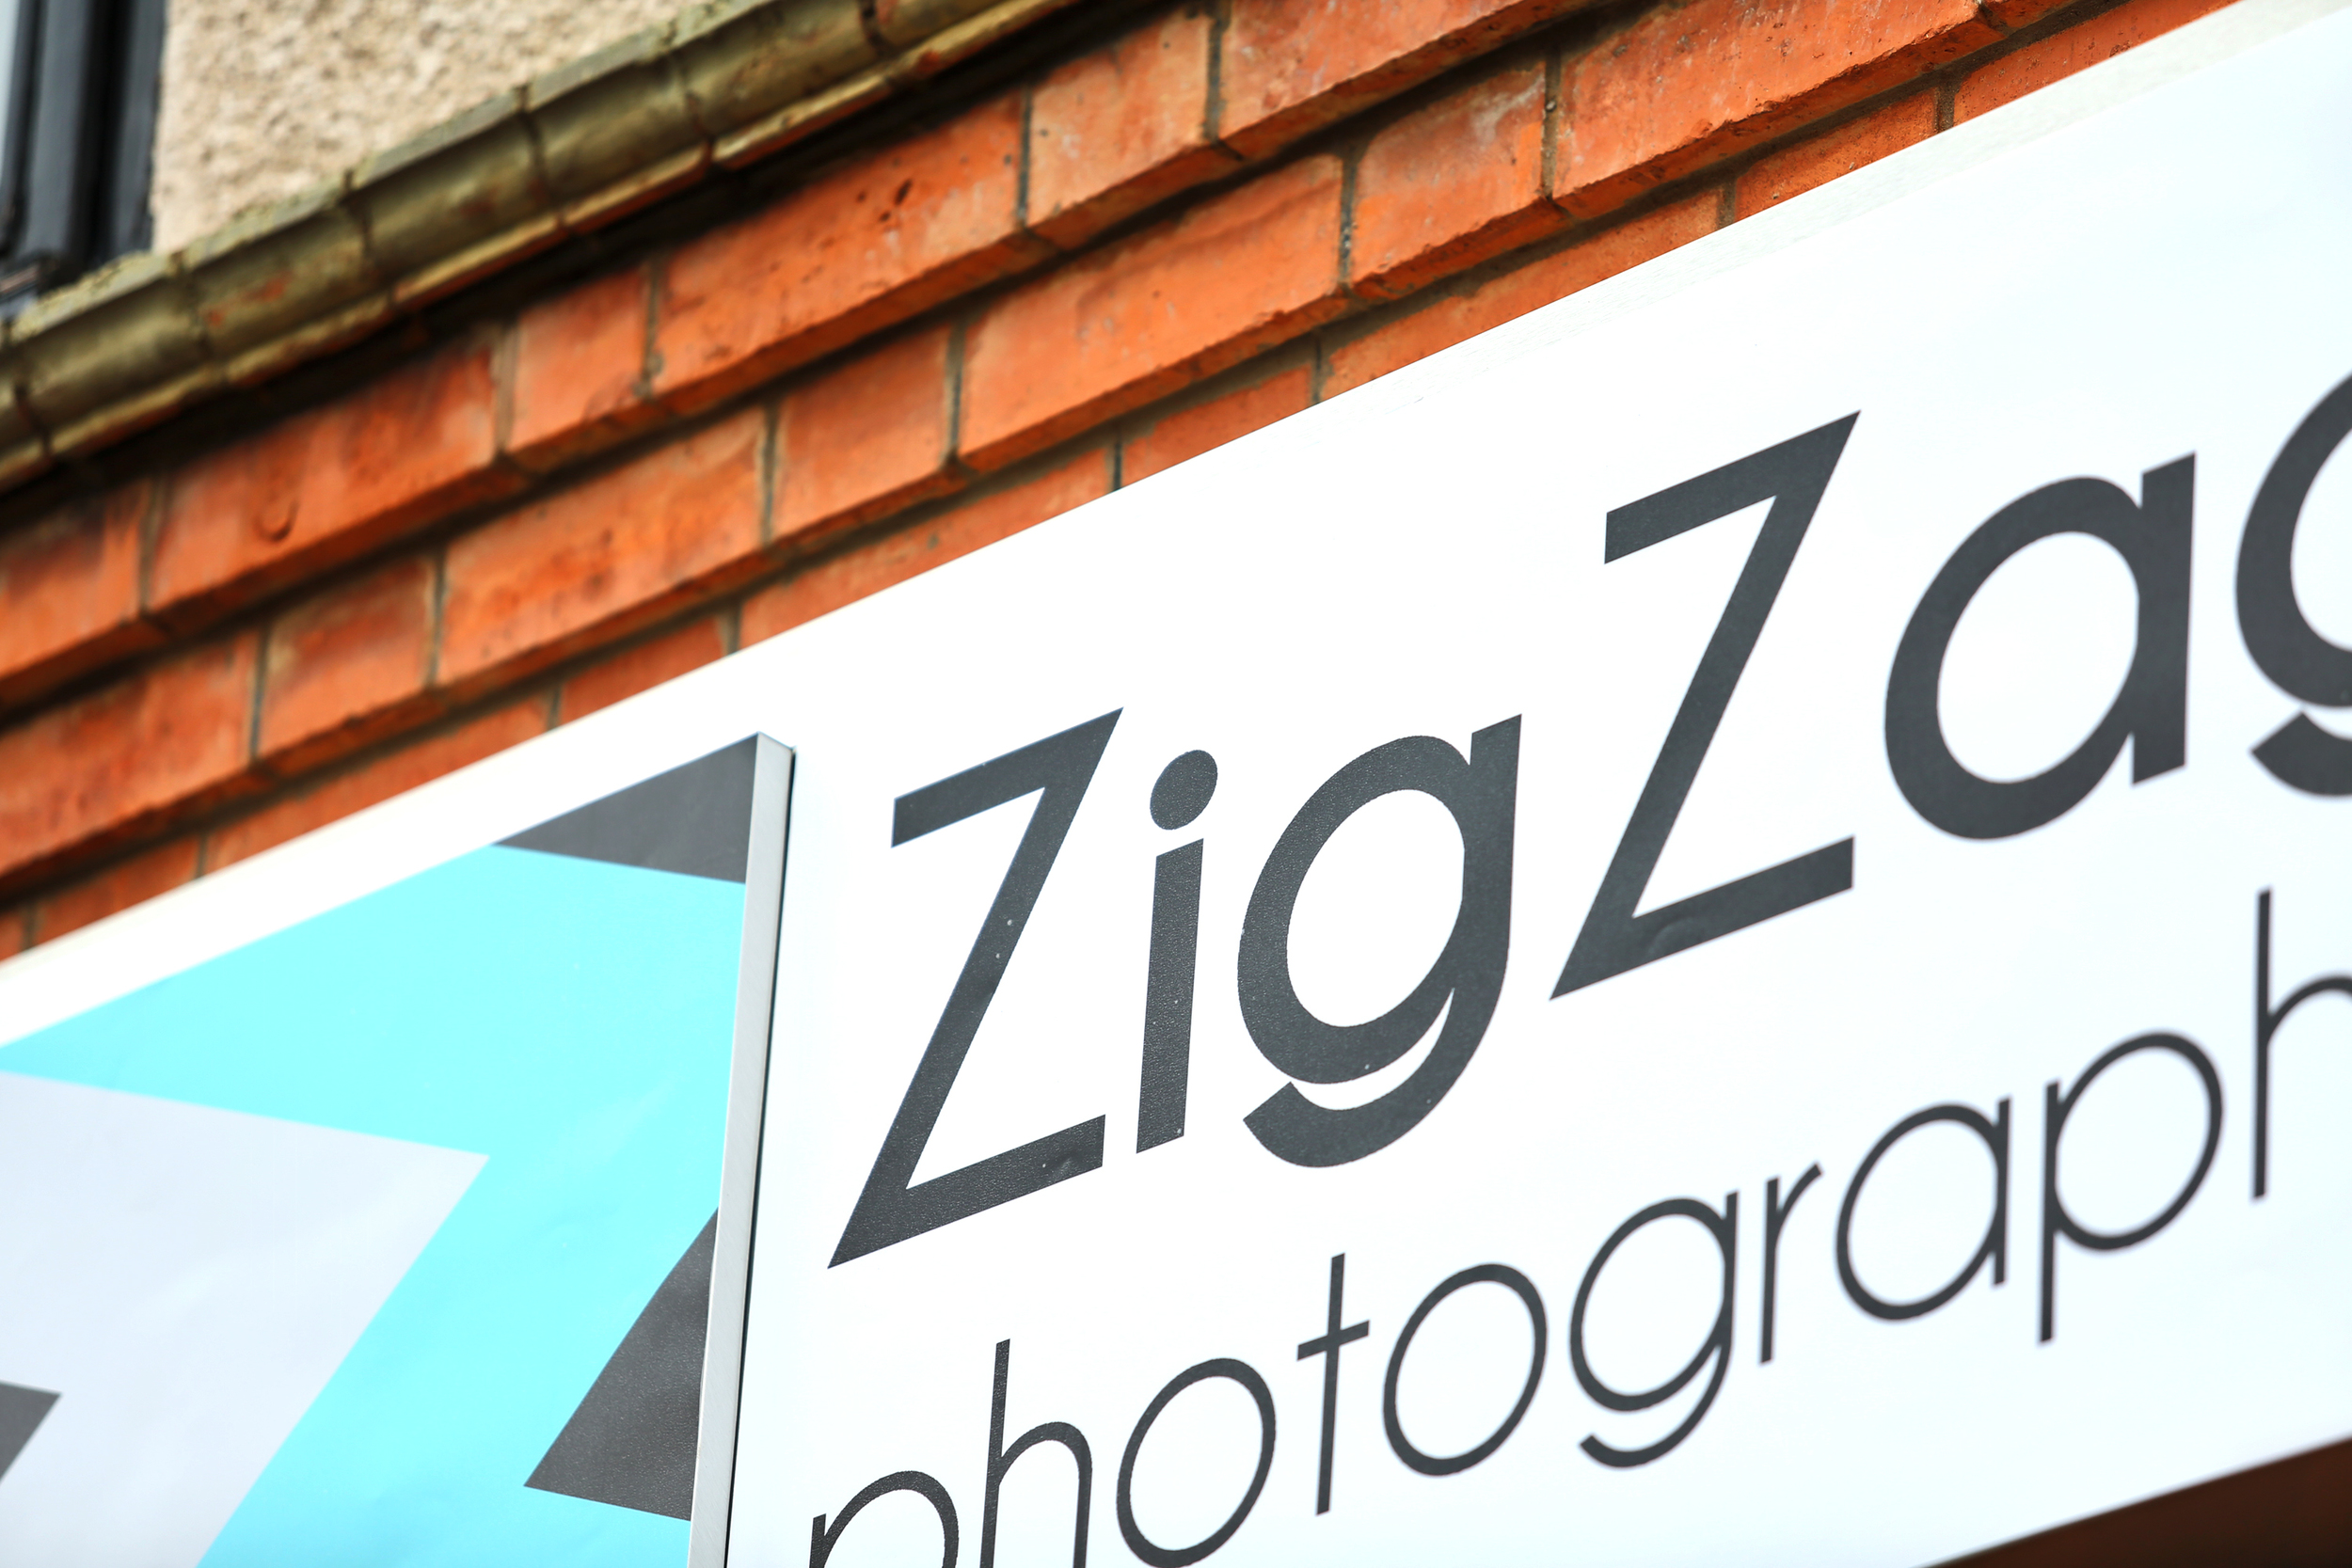 Izigzag-photography-studio-photo-shoot-clarendon-park-queens-road-zig-zag.jpg